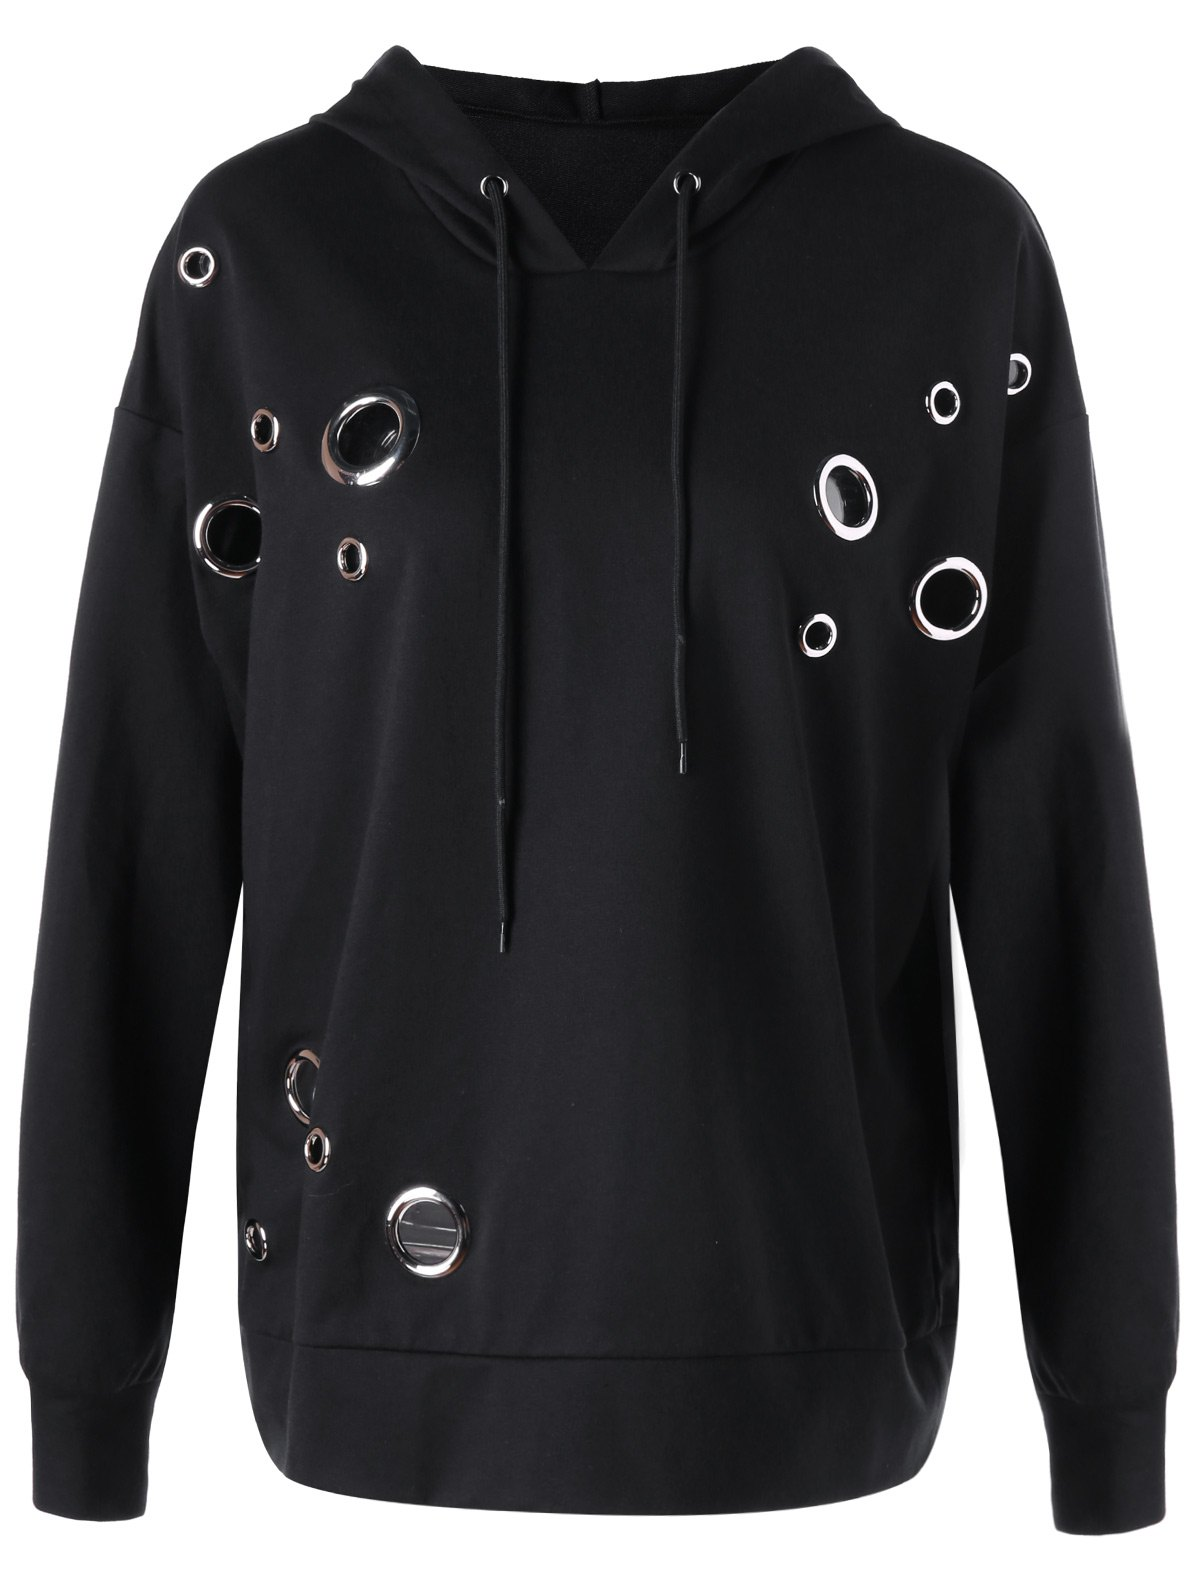 Casual Plus Size Metal Ring HoodieWOMEN<br><br>Size: XL; Color: BLACK; Material: Polyester,Spandex; Shirt Length: Regular; Sleeve Length: Full; Style: Fashion; Pattern Style: Solid; Season: Fall,Spring; Weight: 0.5140kg; Package Contents: 1 x Hoodie;